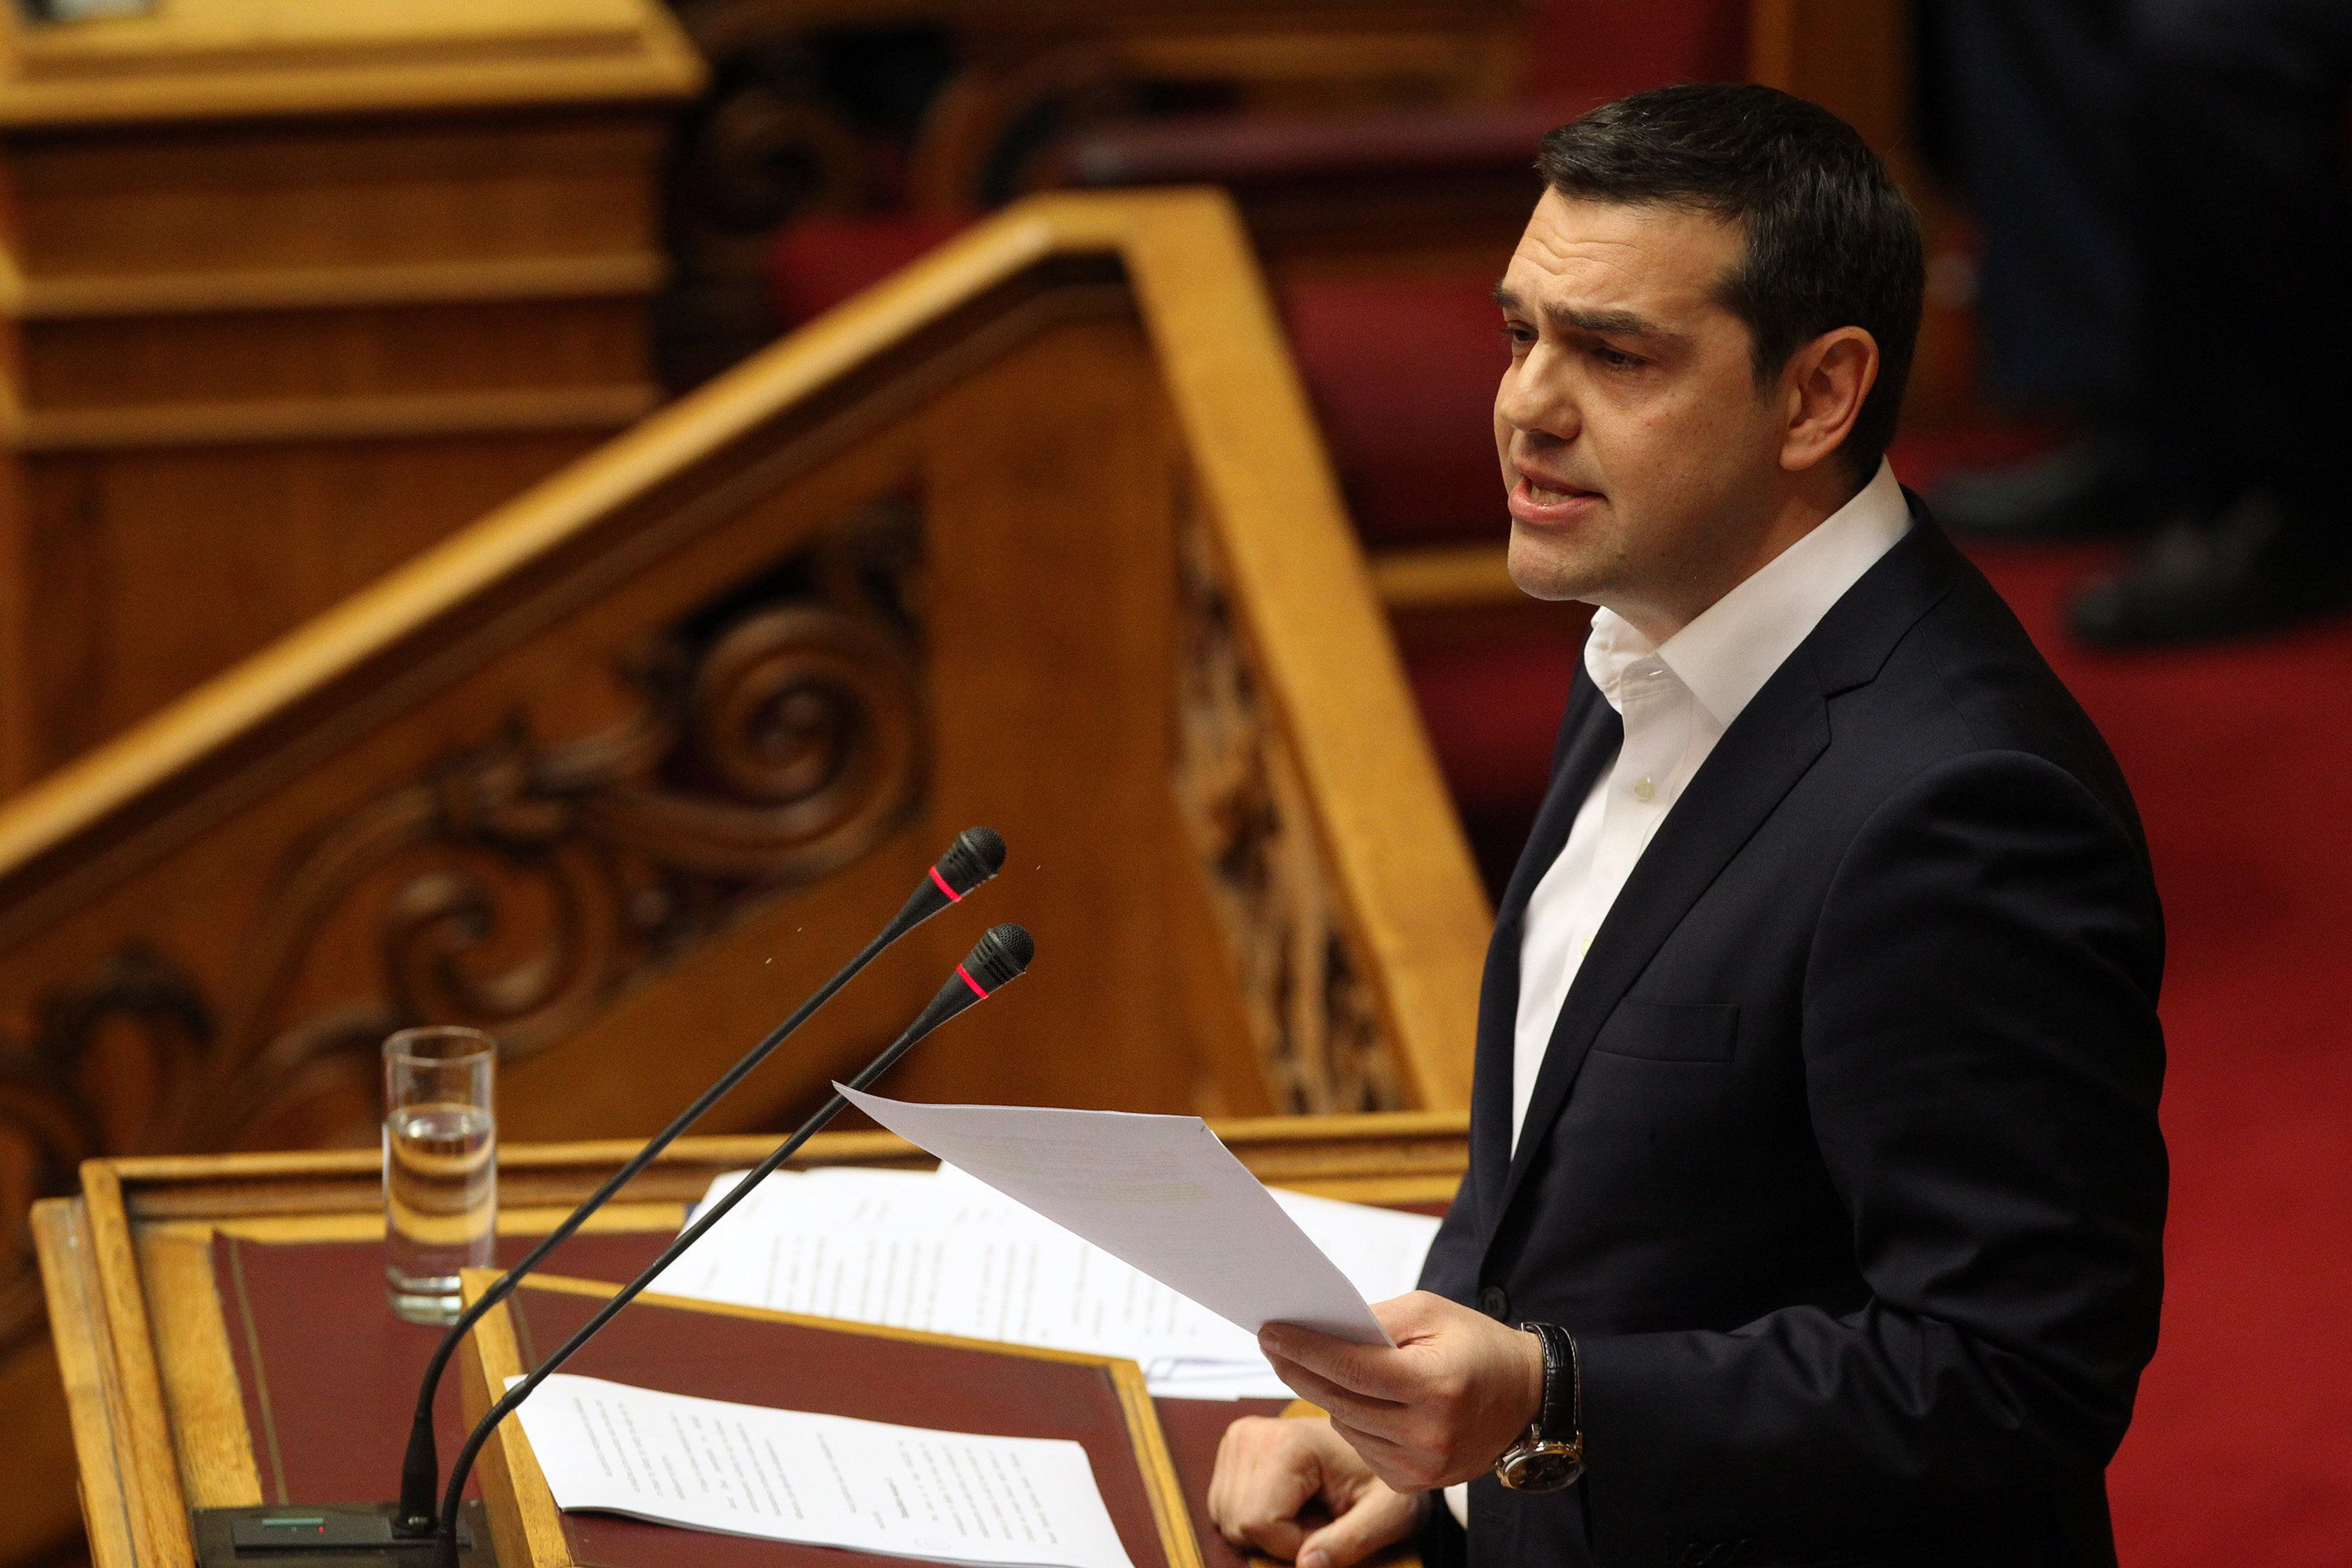 Greek prime minister Alexis Tsipras expressed anger on Saturday about the leaked remarks of IMF officials.